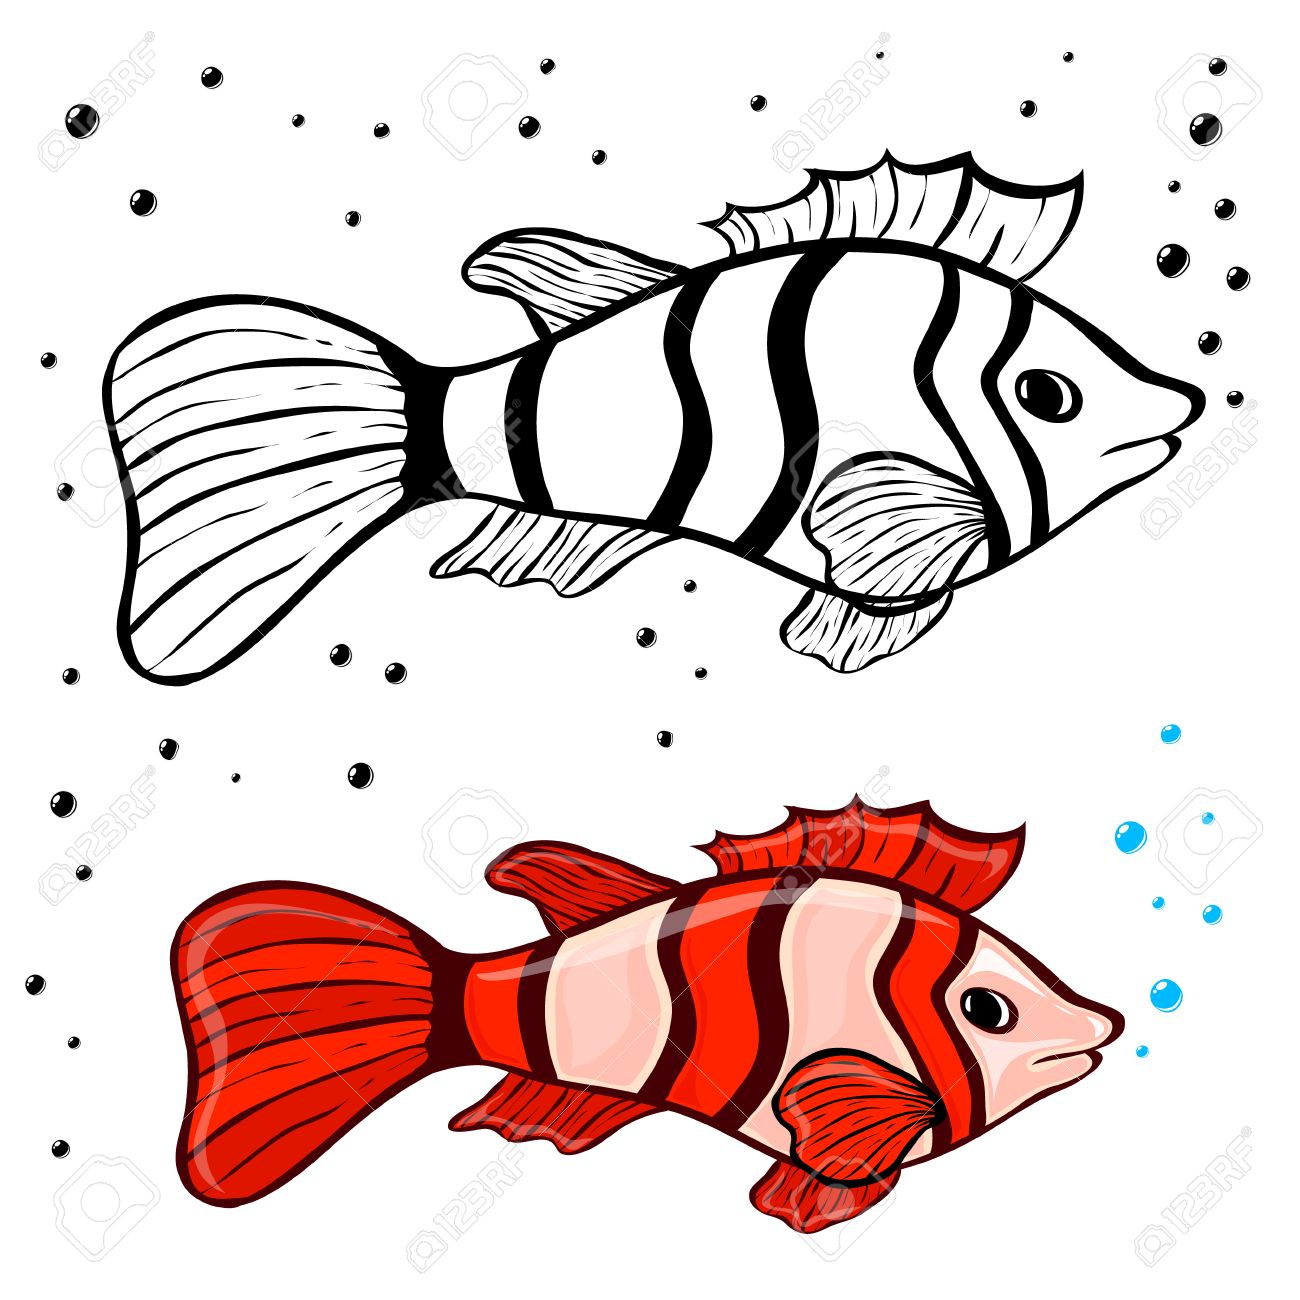 Fish Coloring Pages For Kids Stock Photo, Picture And Royalty Free ...